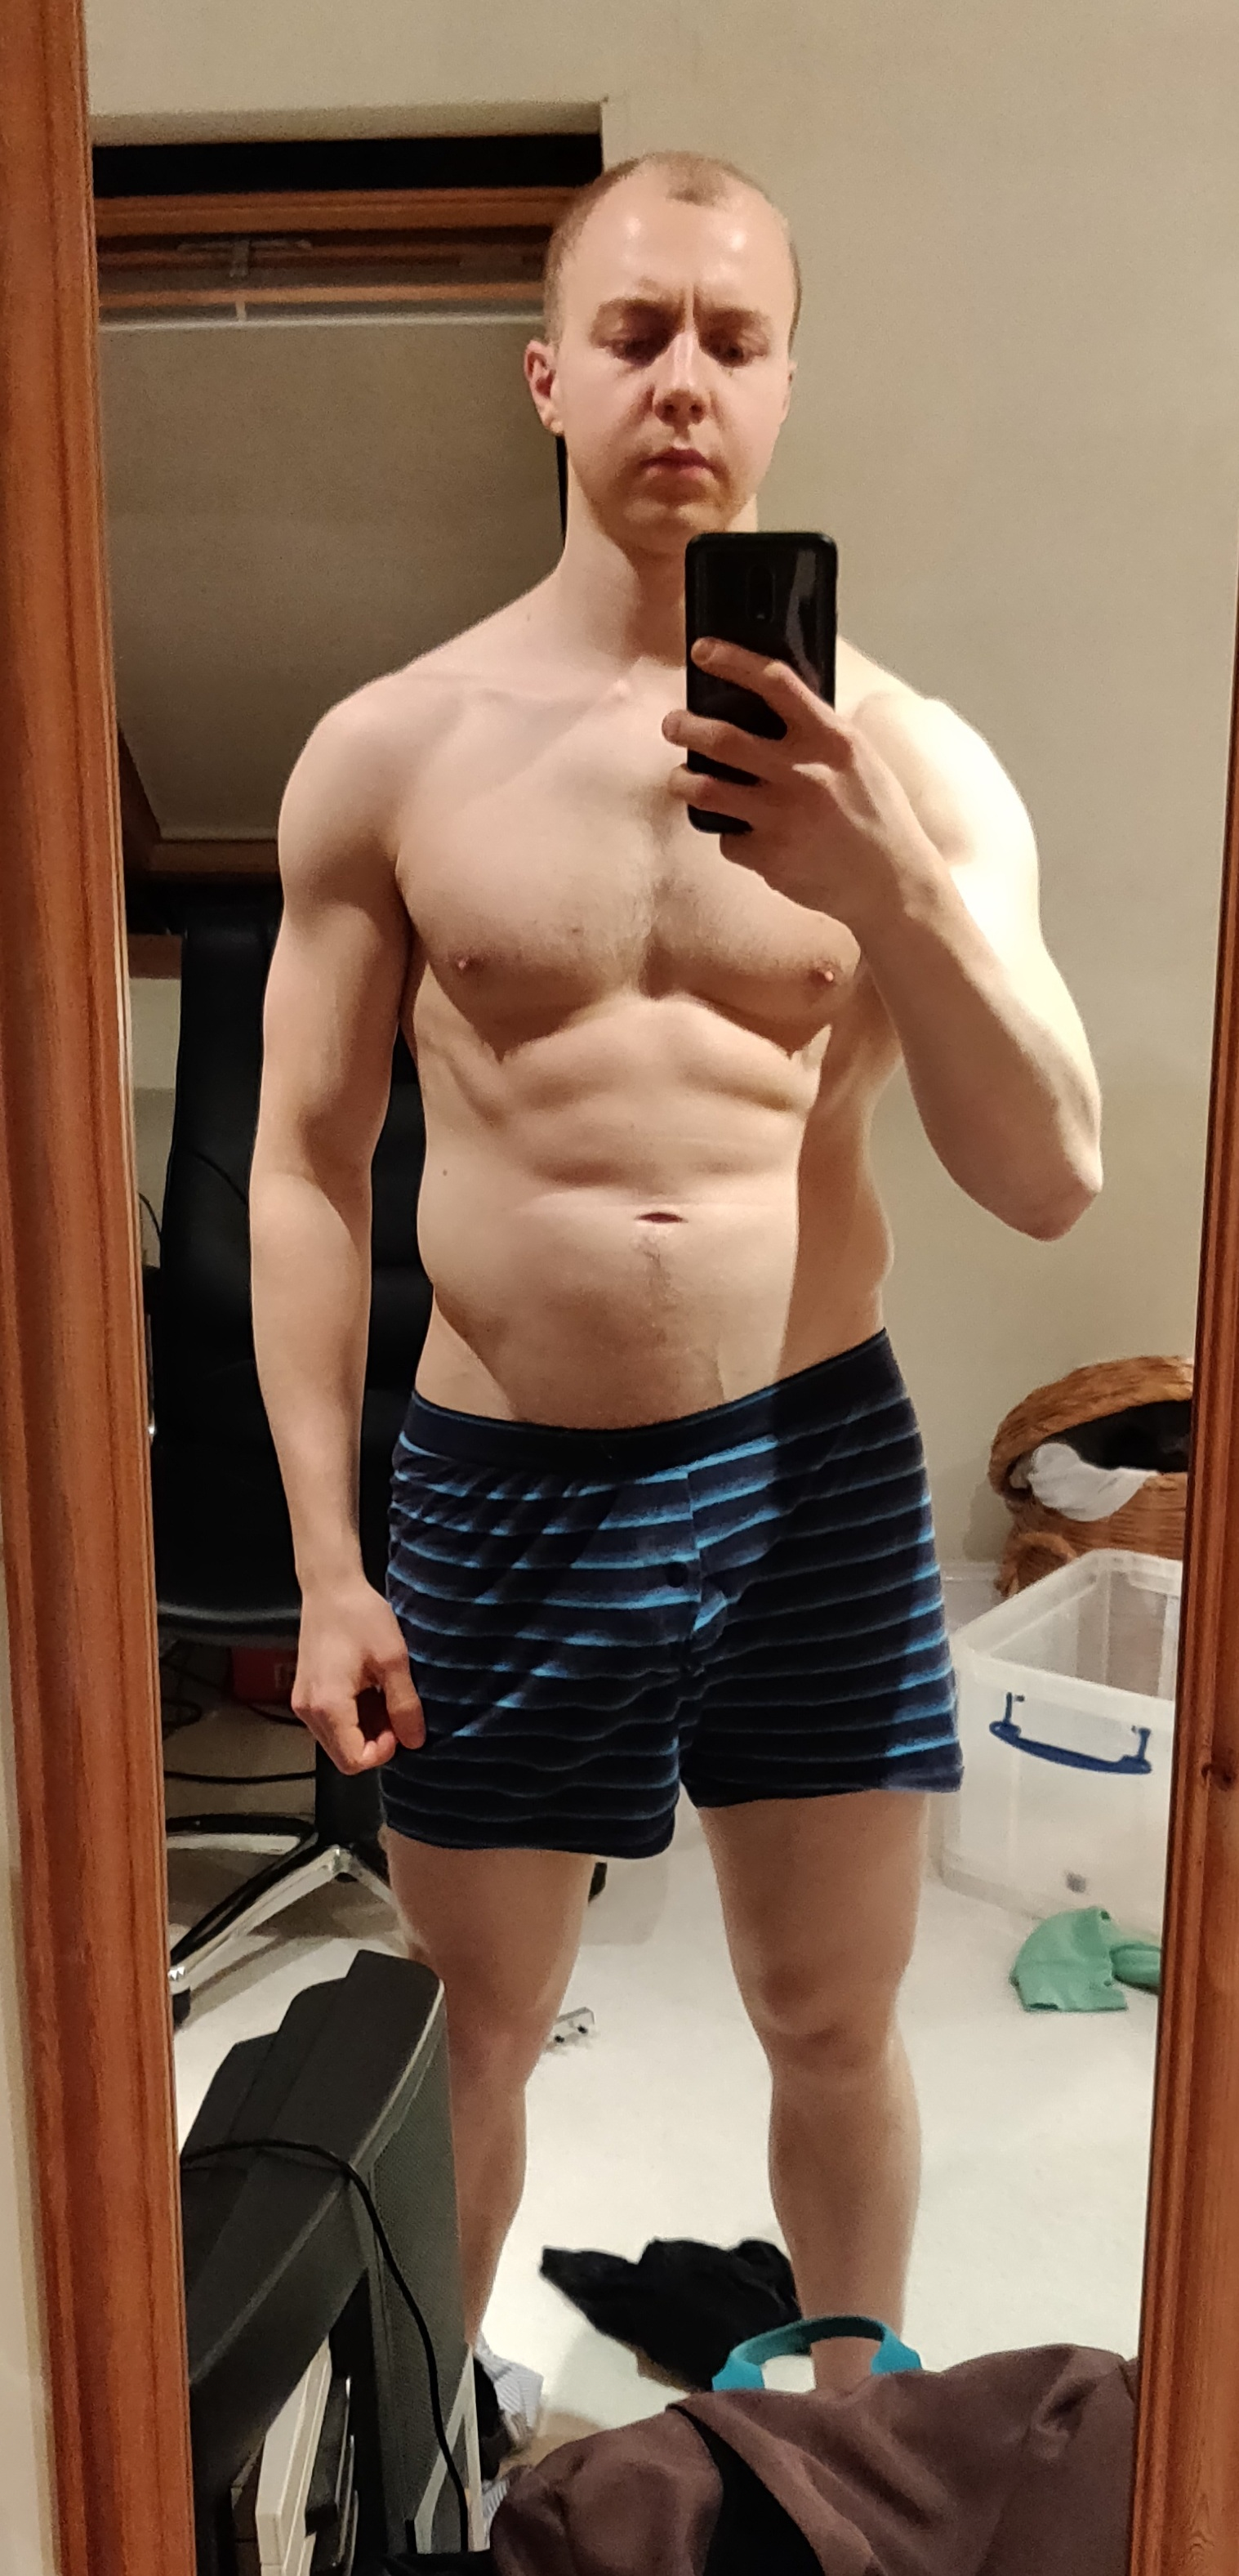 May 2019, two months of calorie counting, 81kg